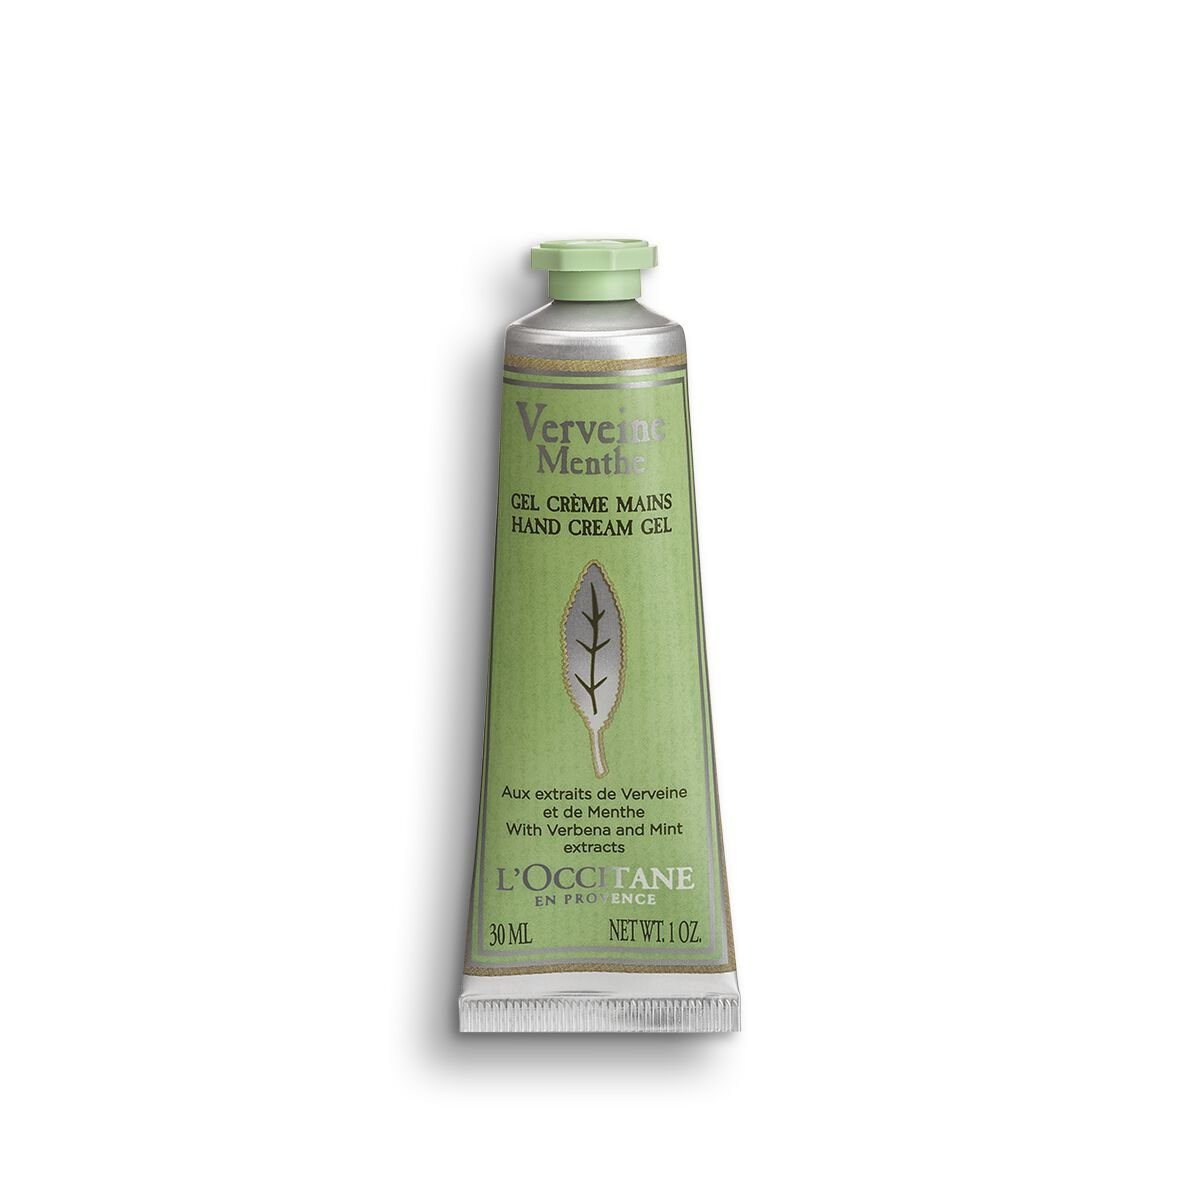 Verbena Mint Hand Cream Gel 1 oz. from L'OCCITANE